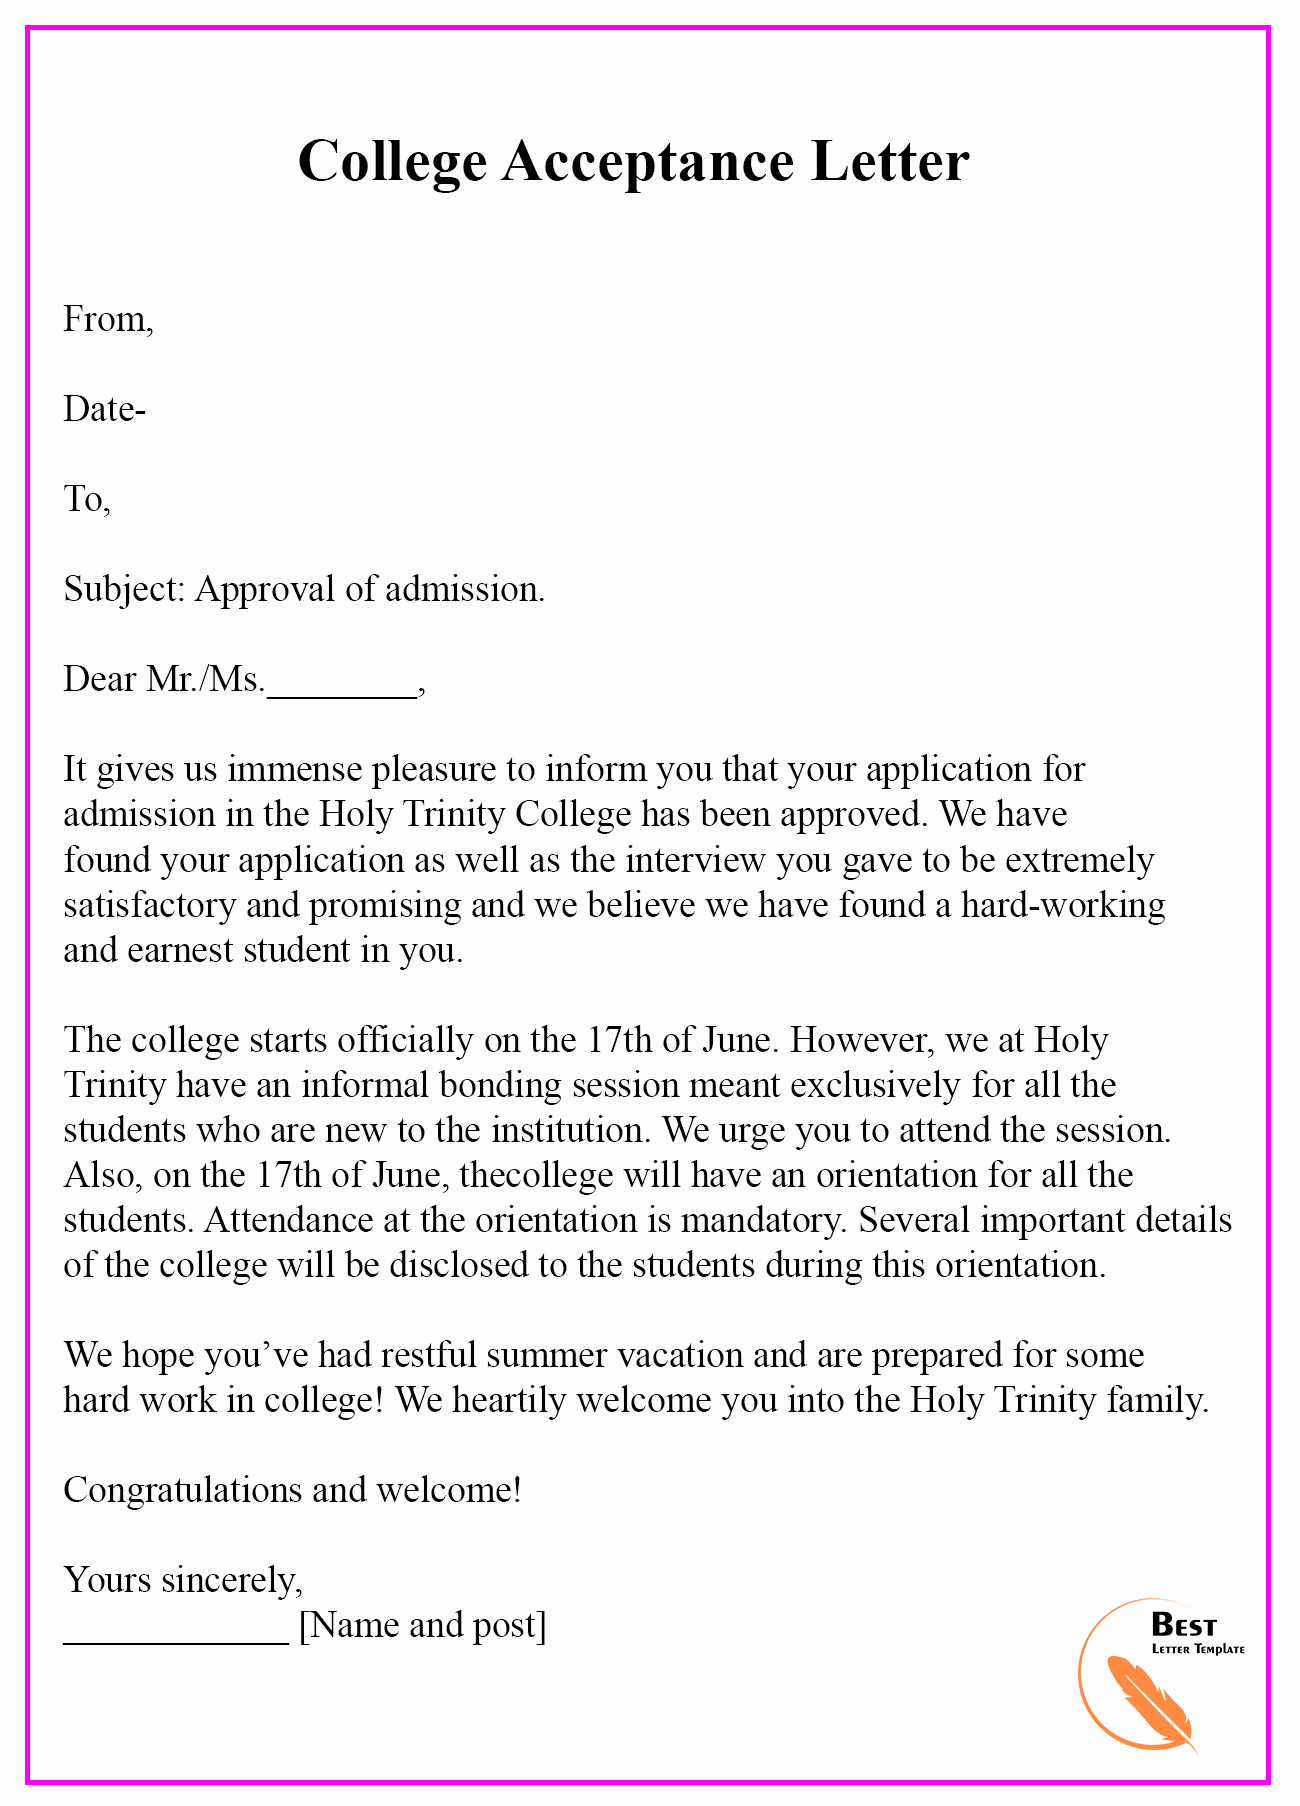 College Acceptance Letter Sample Fresh 7 School College University Acceptance Letter Template [examples & Sample]